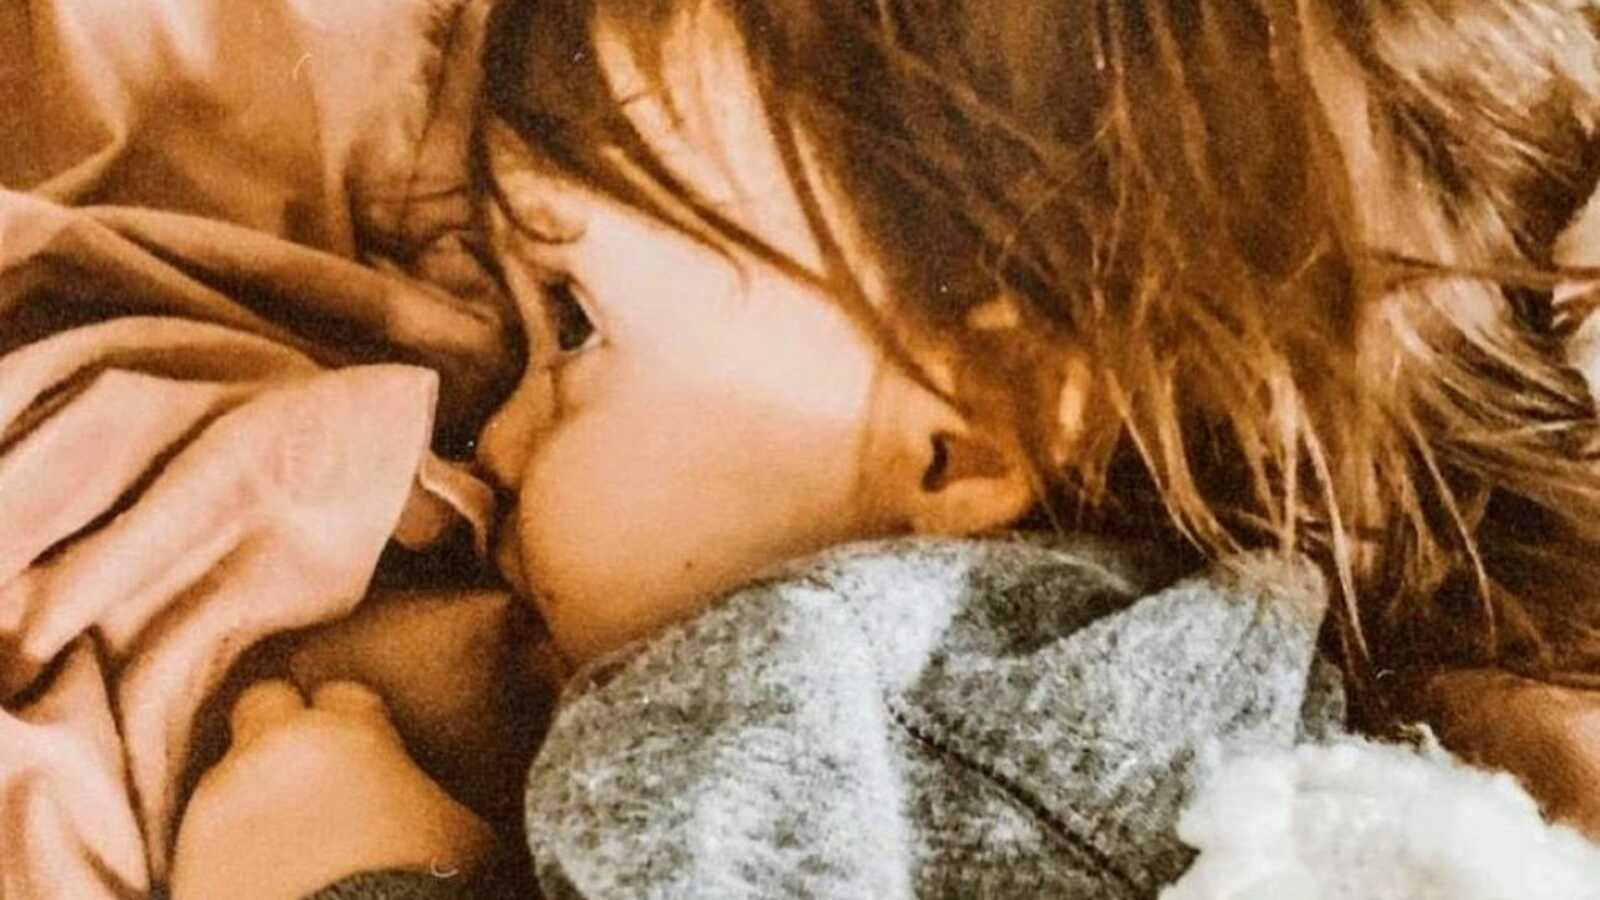 Mom takes photo of her toddler cuddling her while breastfeeding